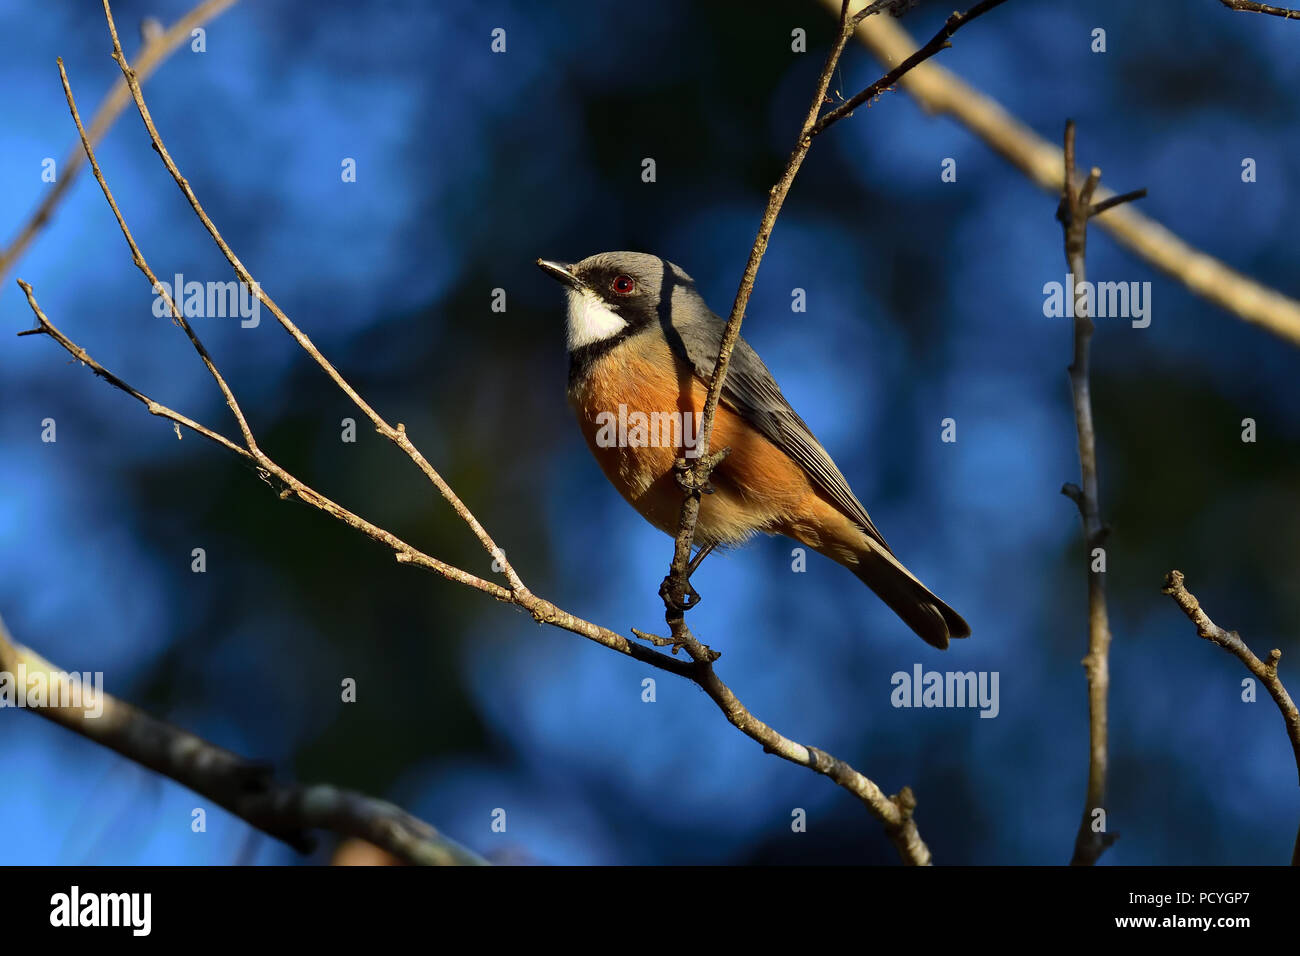 An Australian, Queensland Male Rufous Whistler ( Pachycephala rufiventris ) perched on a tree branch resting in lovely morning light - Stock Image